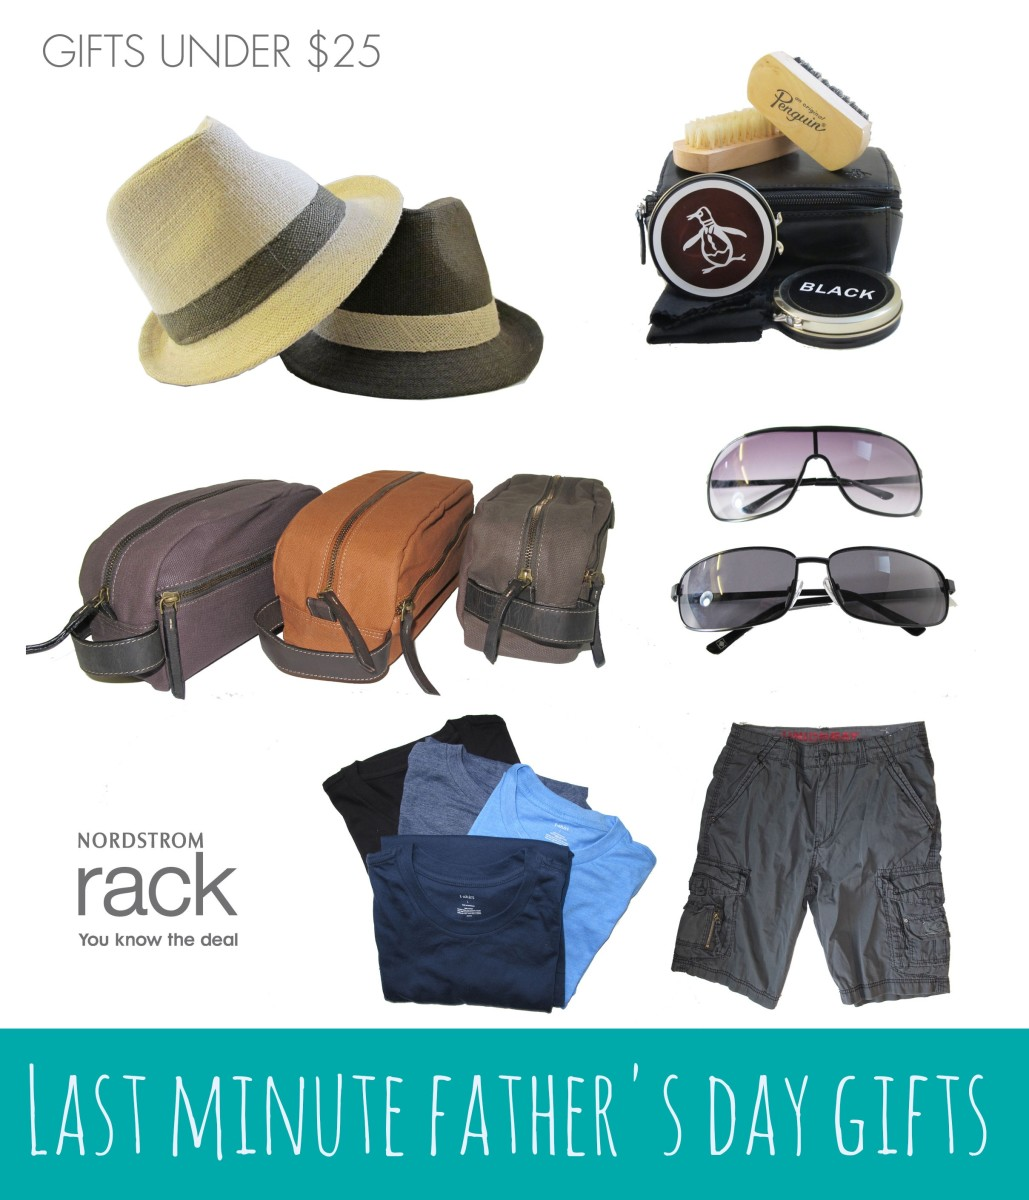 Father s Day gifts at Nordstrom Rack - MomTrends 6d076a2ac2d